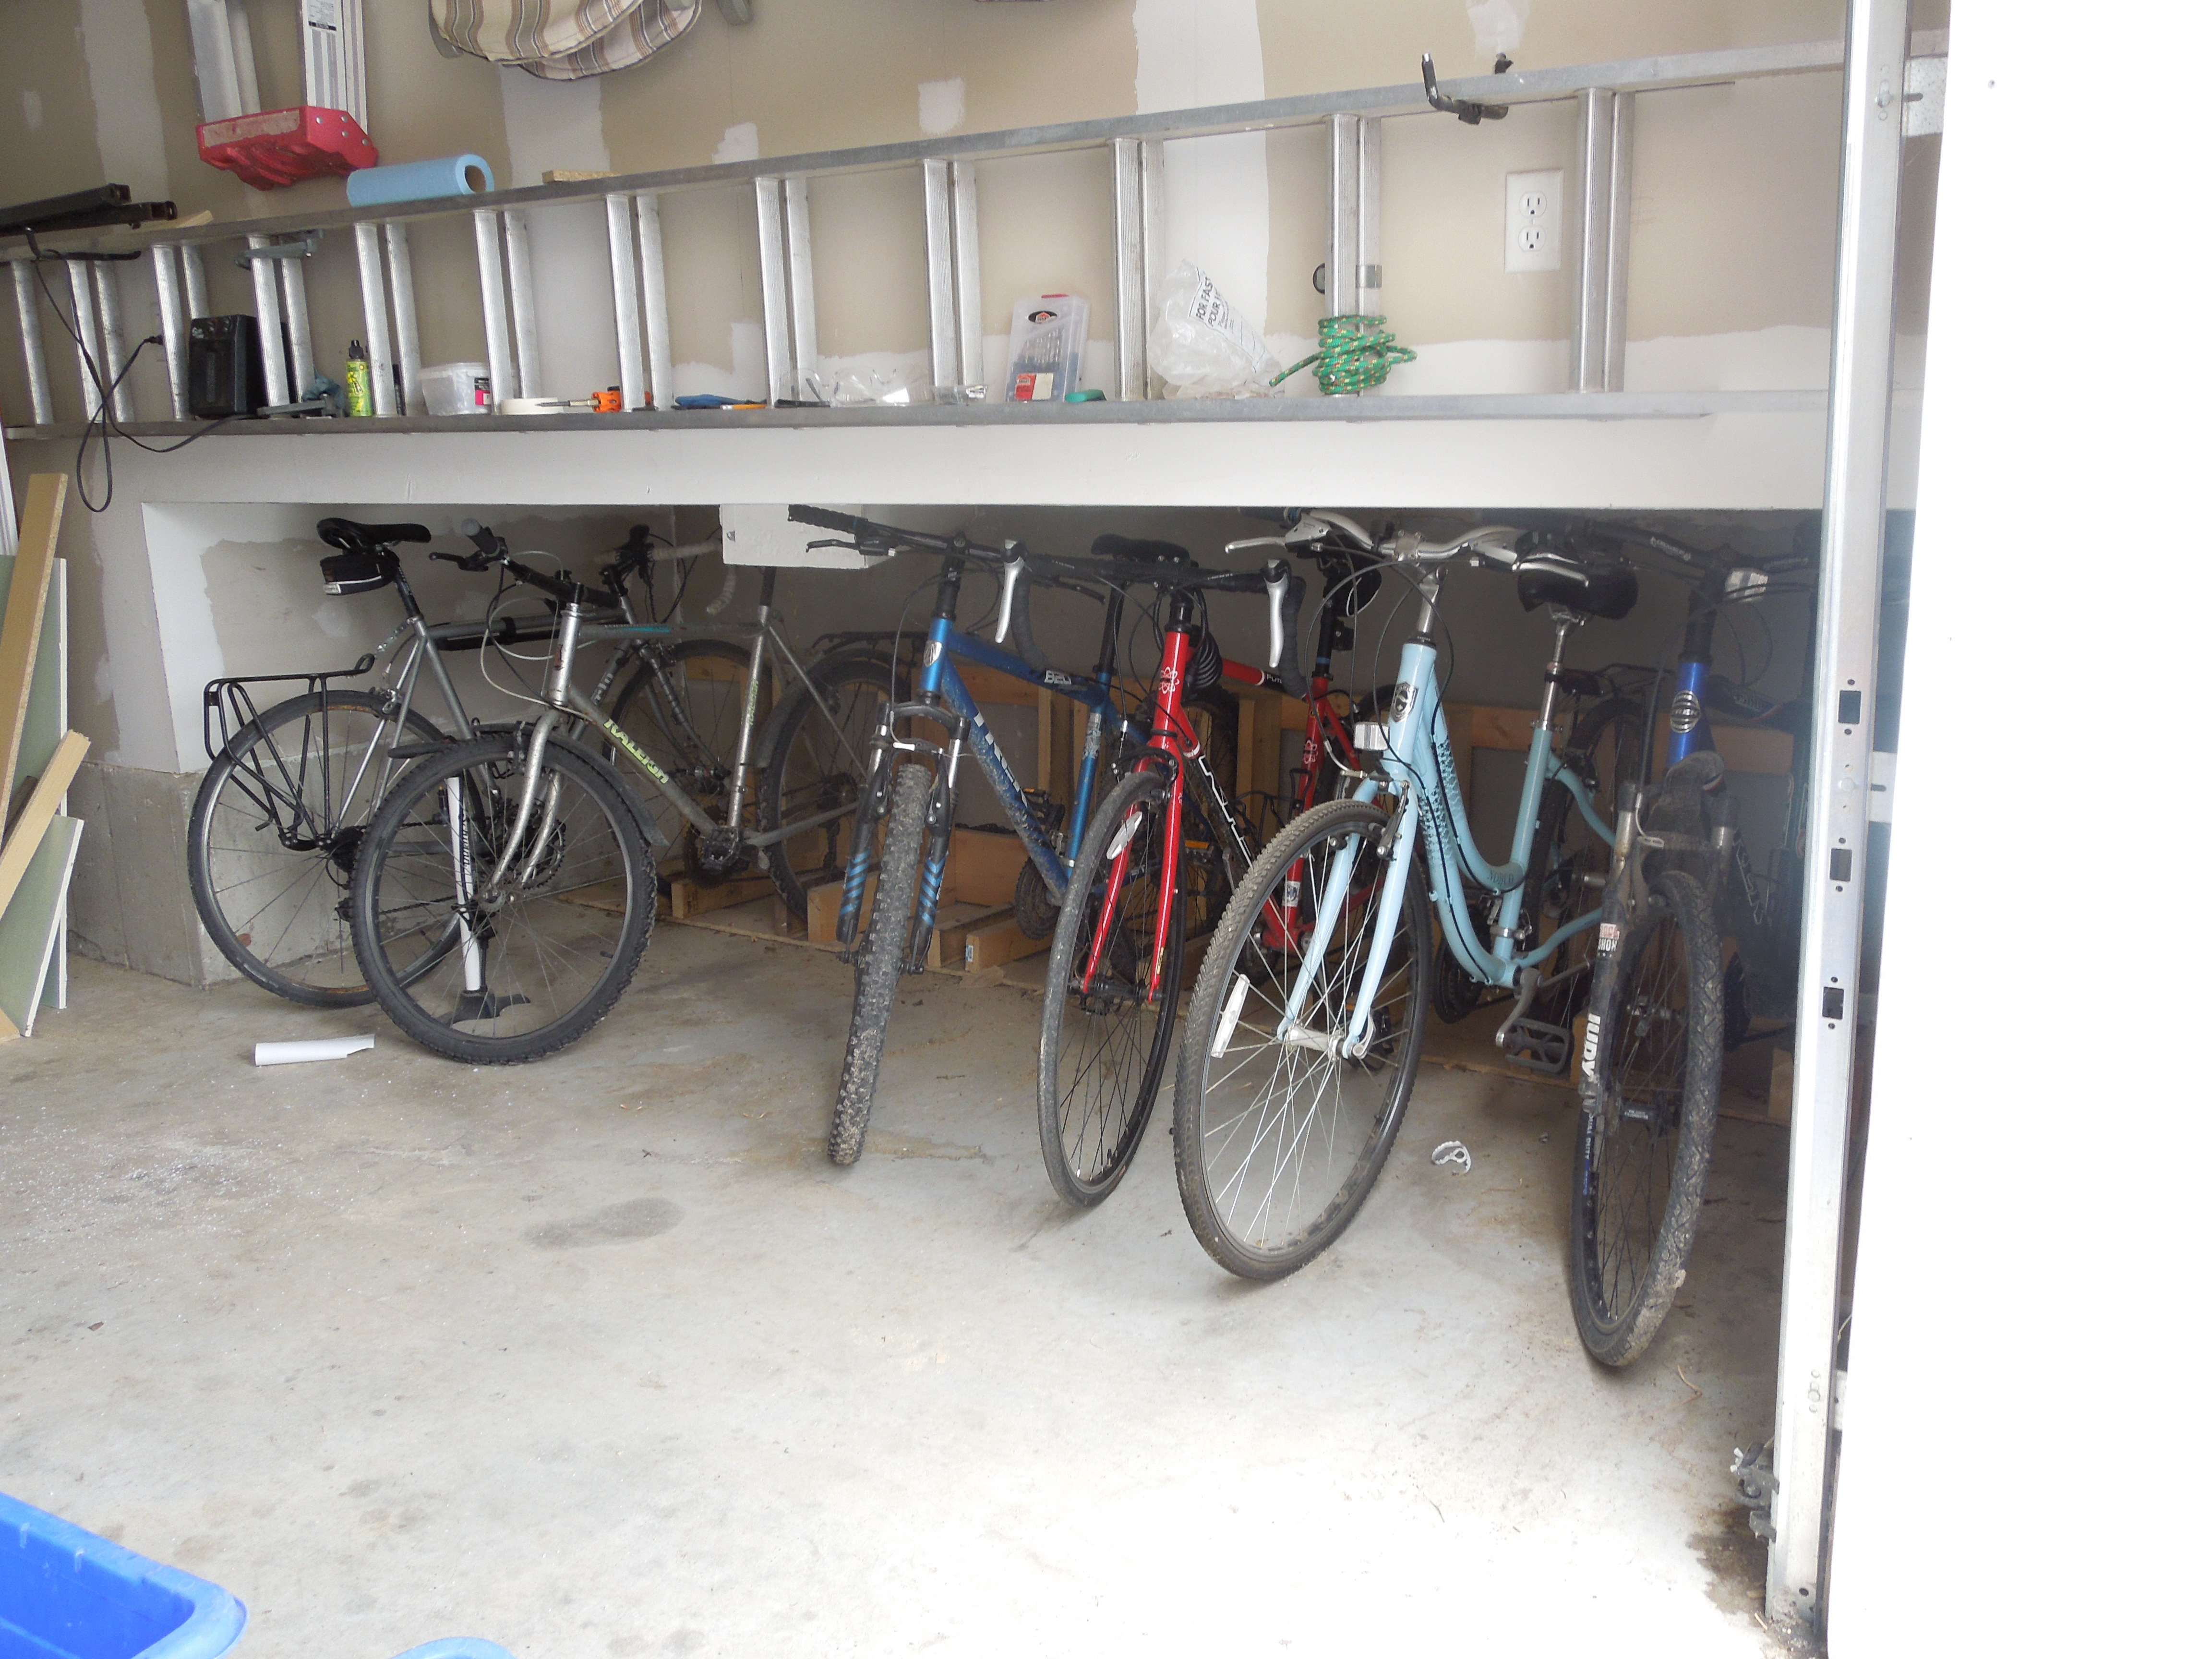 The Main Floor Of My House Sits Very High, So I Wanted To Make Use Of That  Height, For The Bike Storage